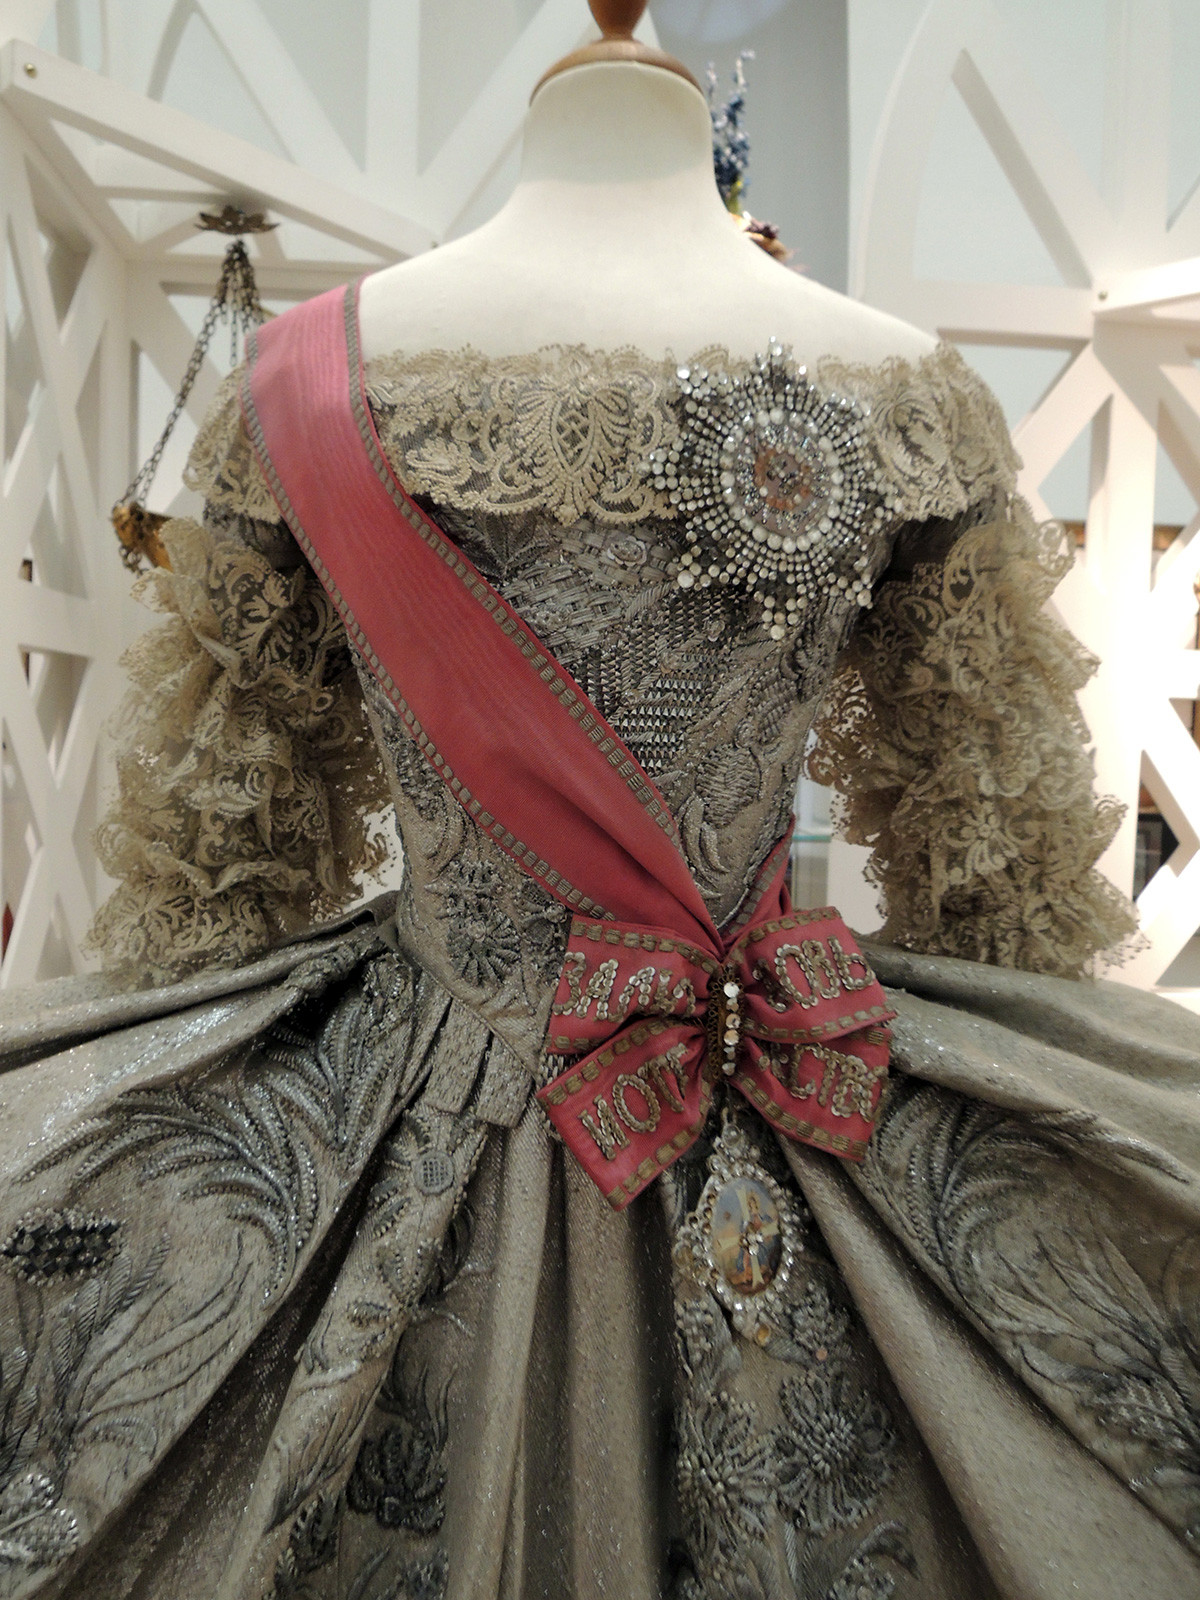 A replica of Catherine I's wedding dress, decorated with a Star and a Badge of the Order of St. Catherine.